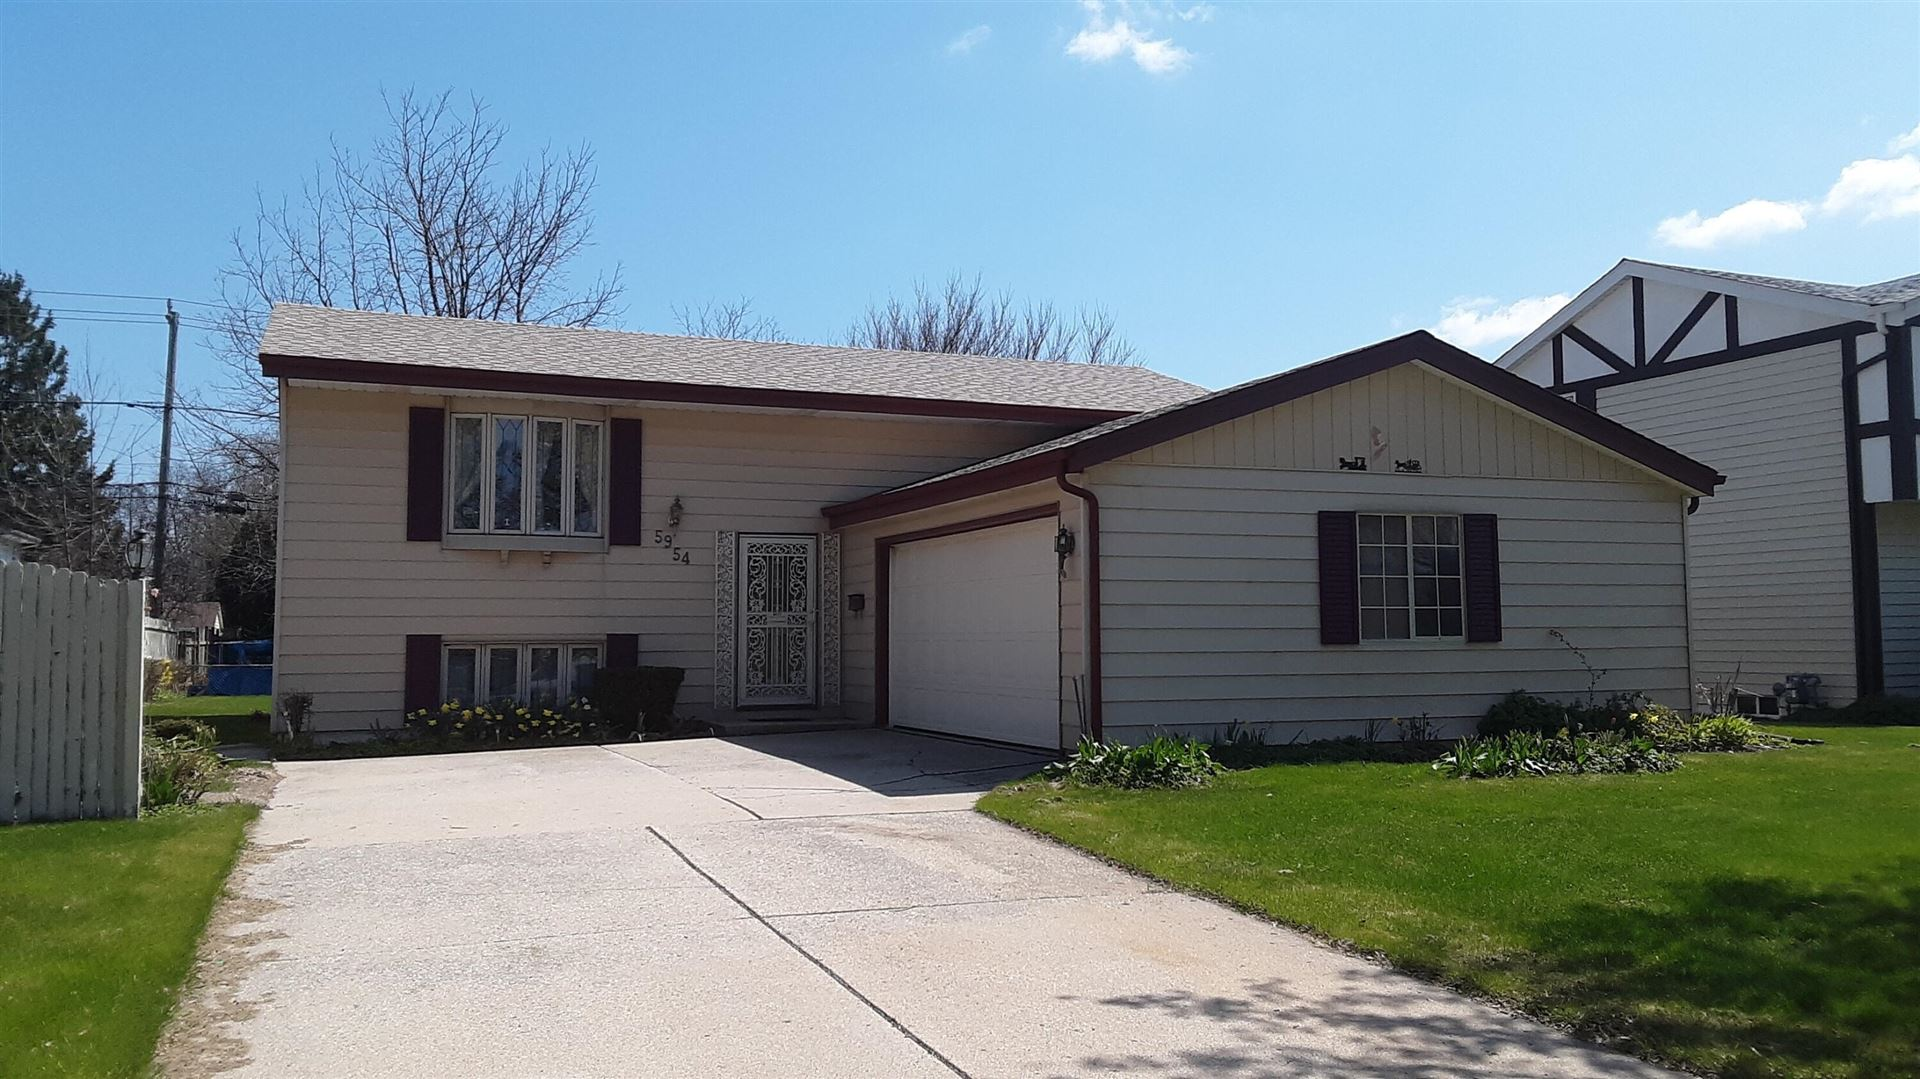 5954 S Robert Ave, Cudahy, WI 53110 - MLS#: 1737079